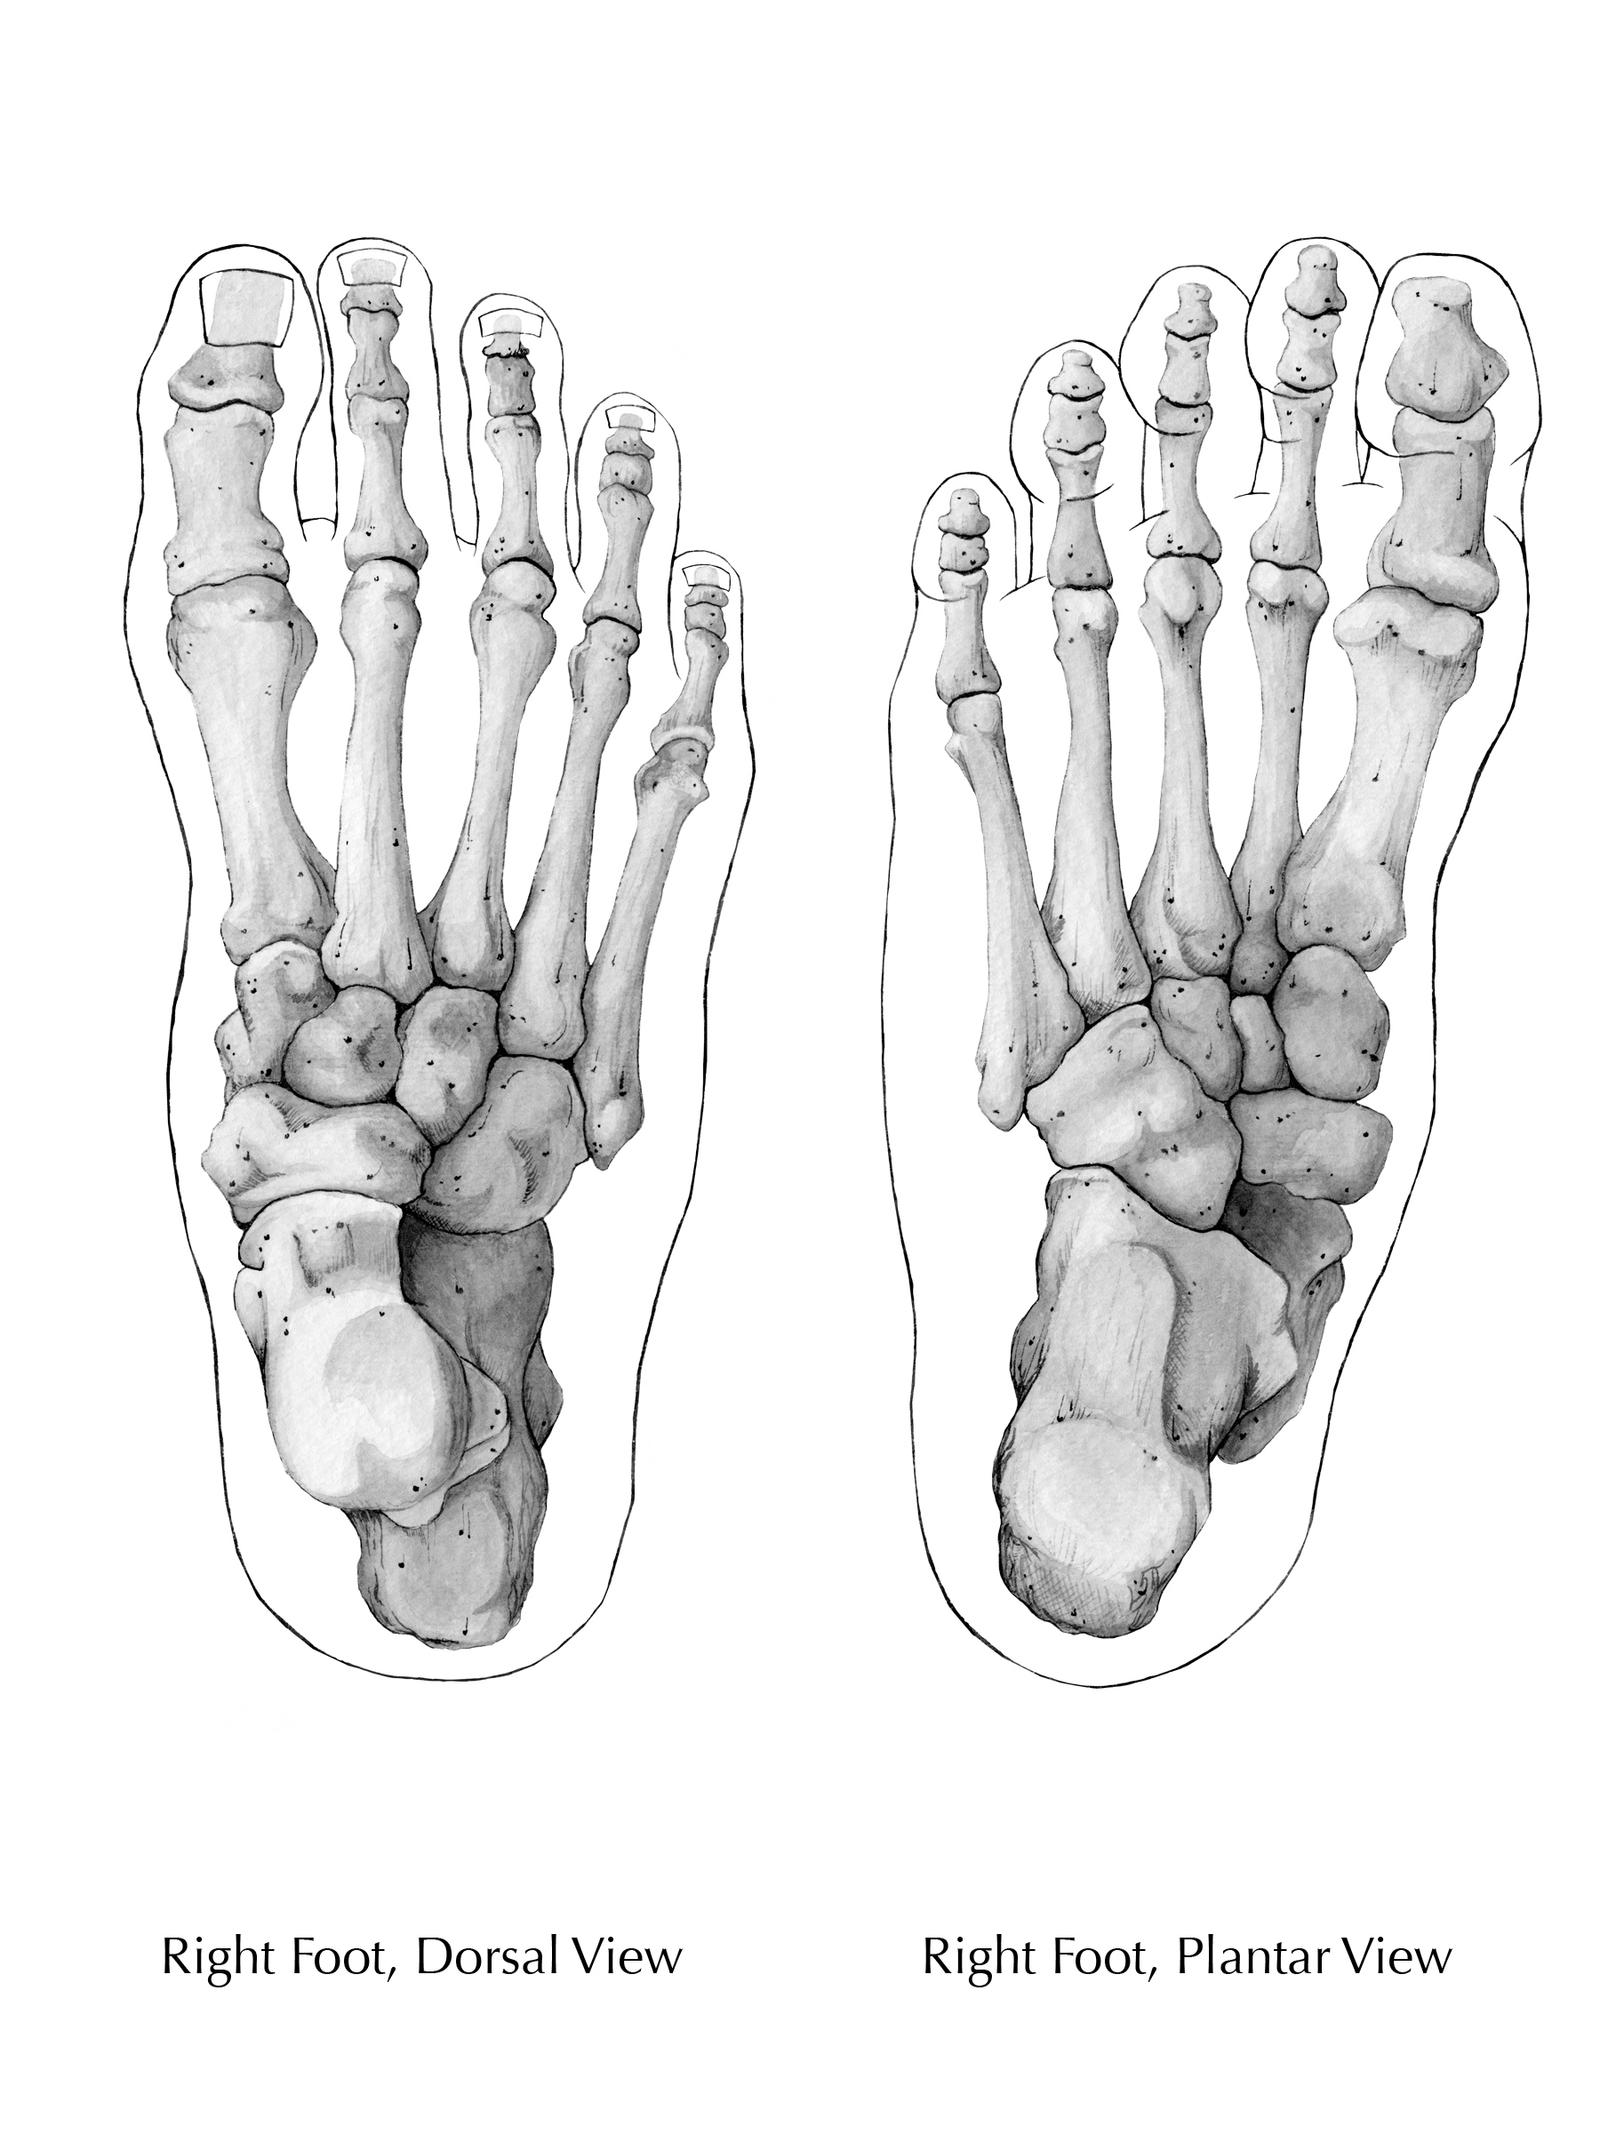 Bones of the foot 2 by tiffanydavis on deviantart bones of the foot 2 by tiffanydavis ccuart Gallery